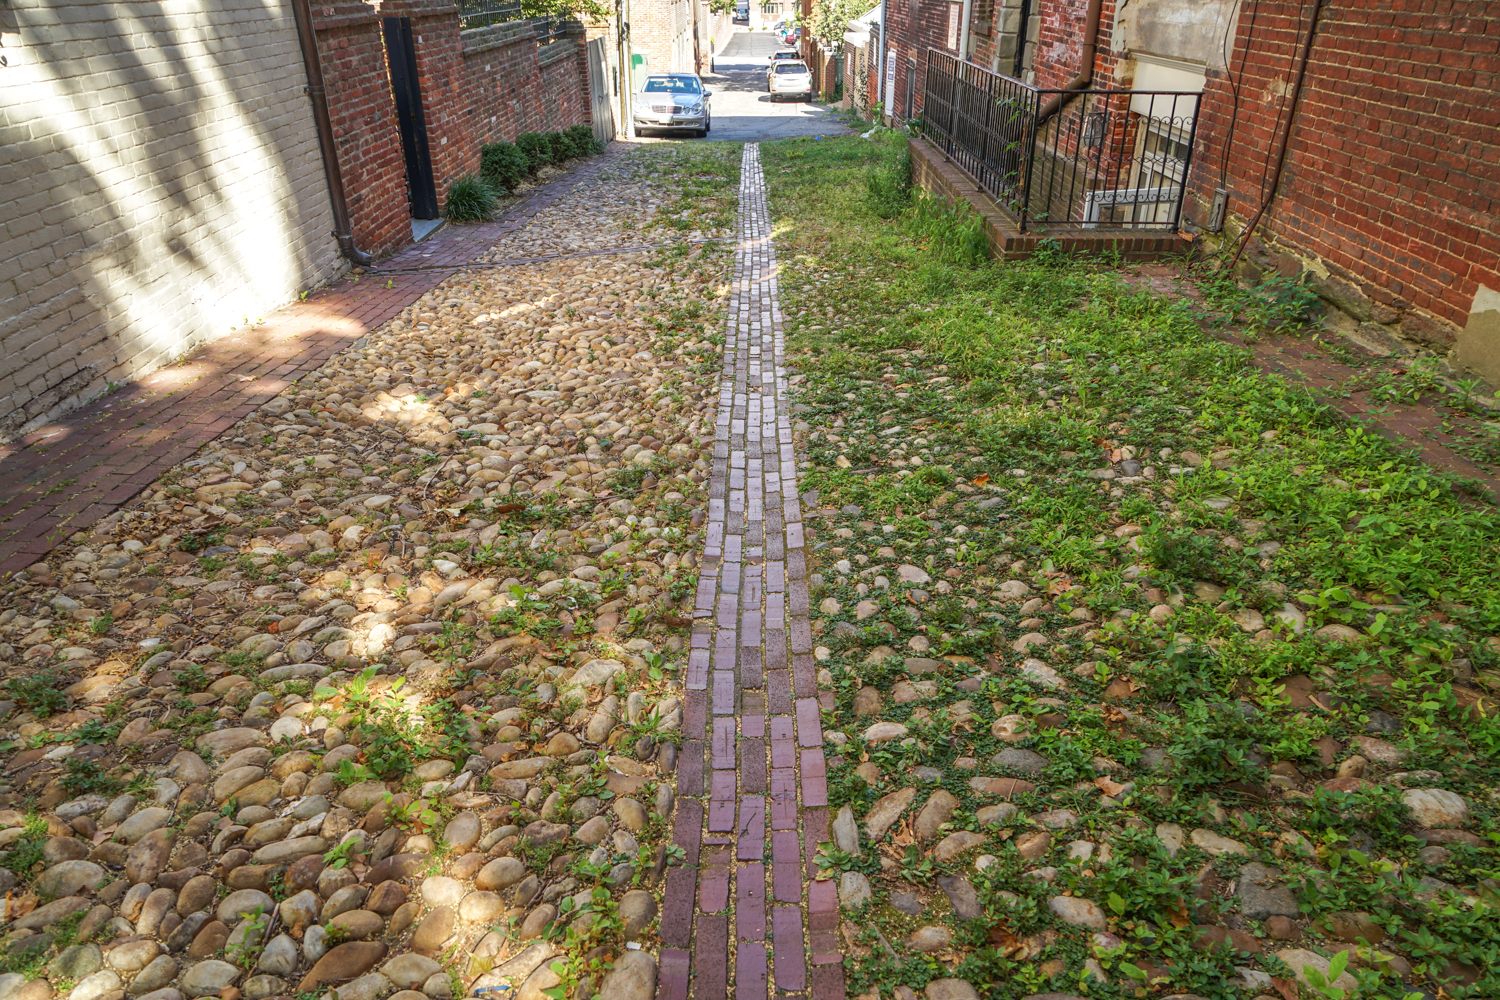 Thompsons Alley at Fairfax